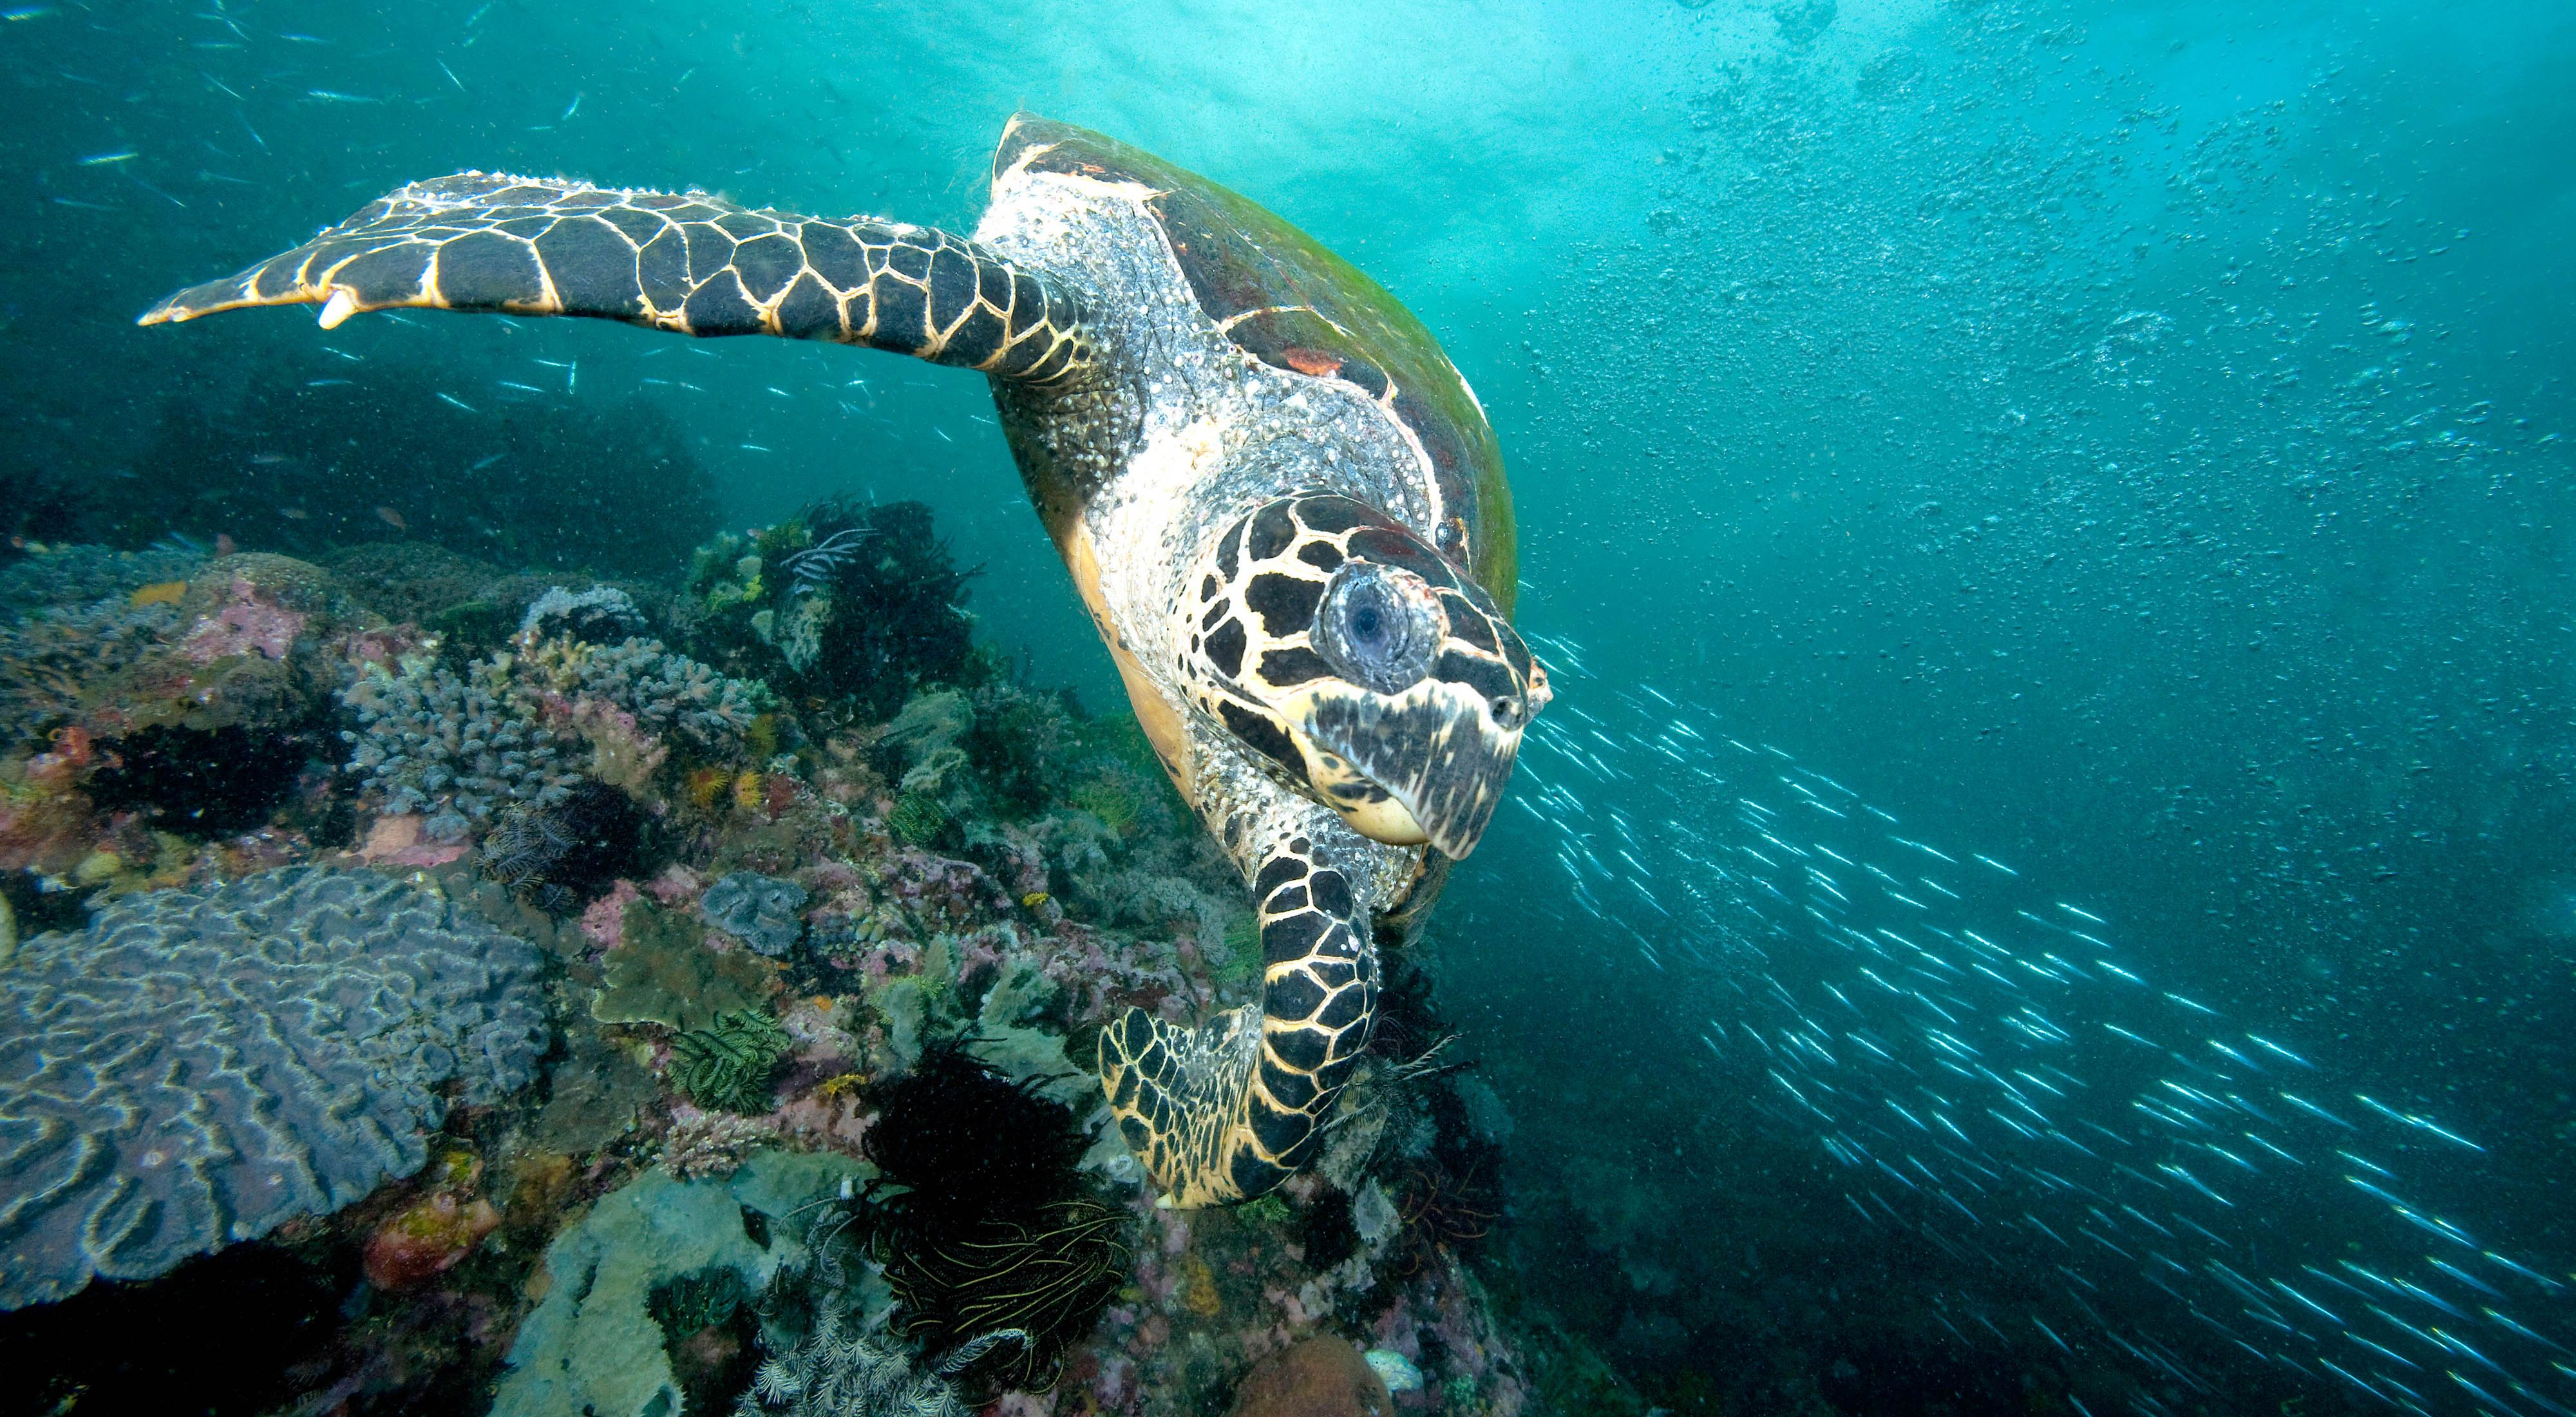 front view of a sea turtle gliding over coral